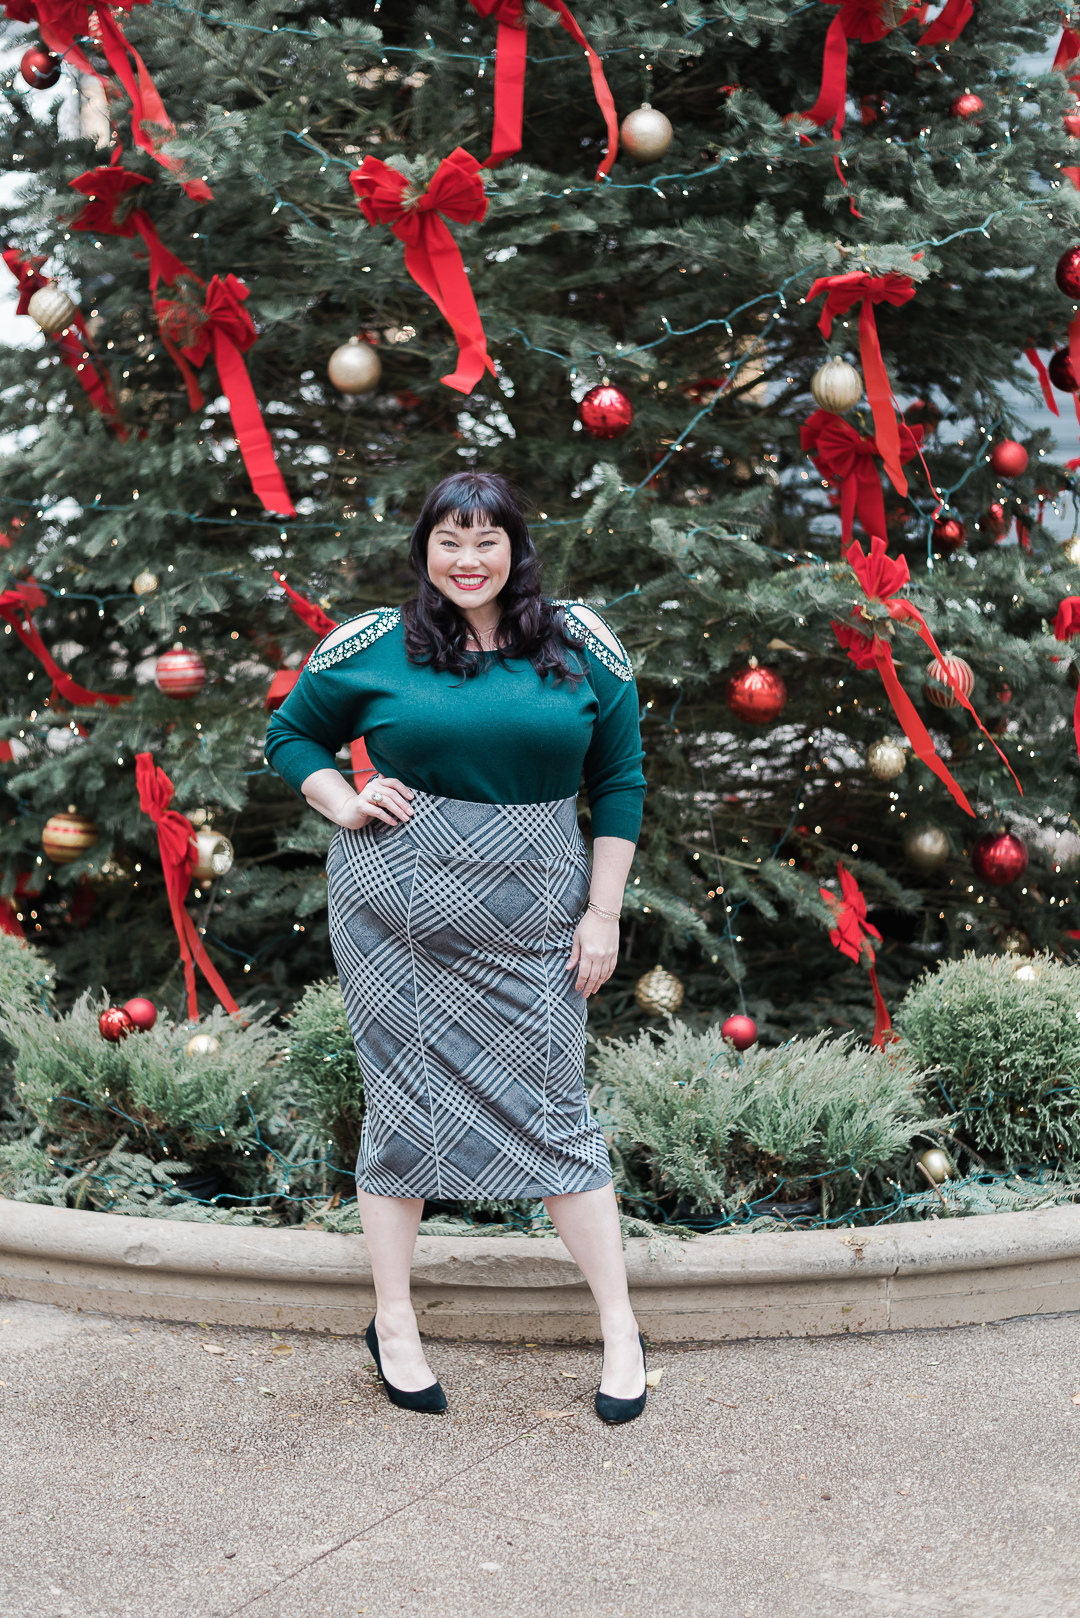 Emerald Green Plus Size, Macy's, INC green embellished sweater, Plus Size Style, Plus Size Fashion, Style Plus Curves, Chicago Blogger, Chicago Plus Size Blogger, Plus Size Blogger, Amber McCulloch